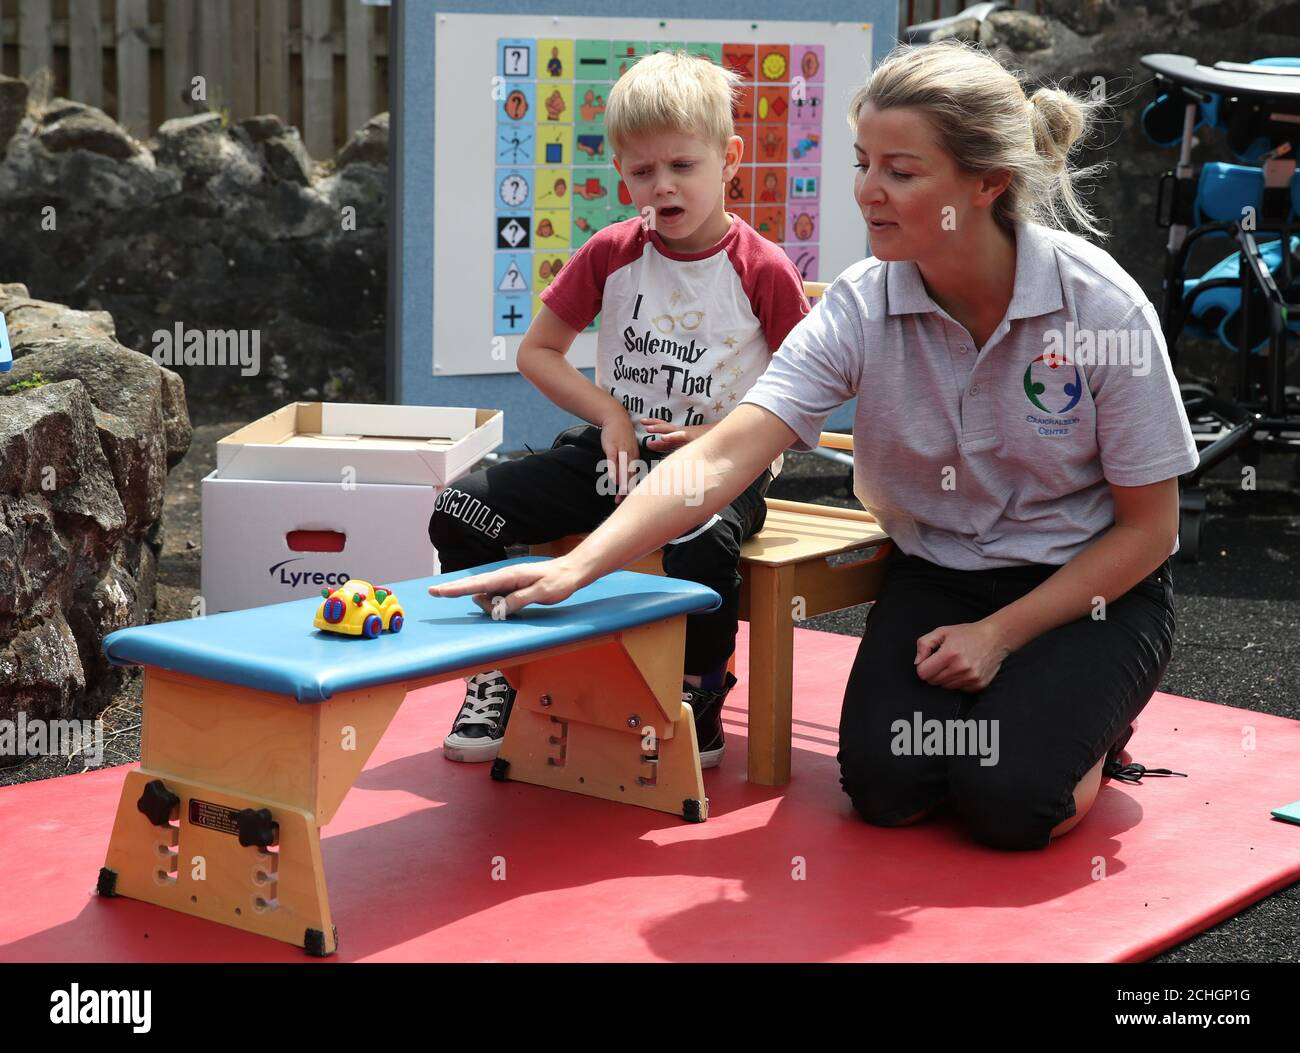 Embargoed to 0001 Monday June 22 Oliver Cunningham with Specialist Physiotherapist Leah Honohan use the weighing scales during a shared theraplay session in the outside therapy area at the Craighalbert Centre. These sessions are taking place to deliver blended learning to children who are shielding. Coronavirus adaptations have been installed at the Scottish Centre for Children with Motor Impairments, Craighalbert Centre, Cumbernauld, as Scotland continues gradually lifting coronavirus lockdown measures. Stock Photo